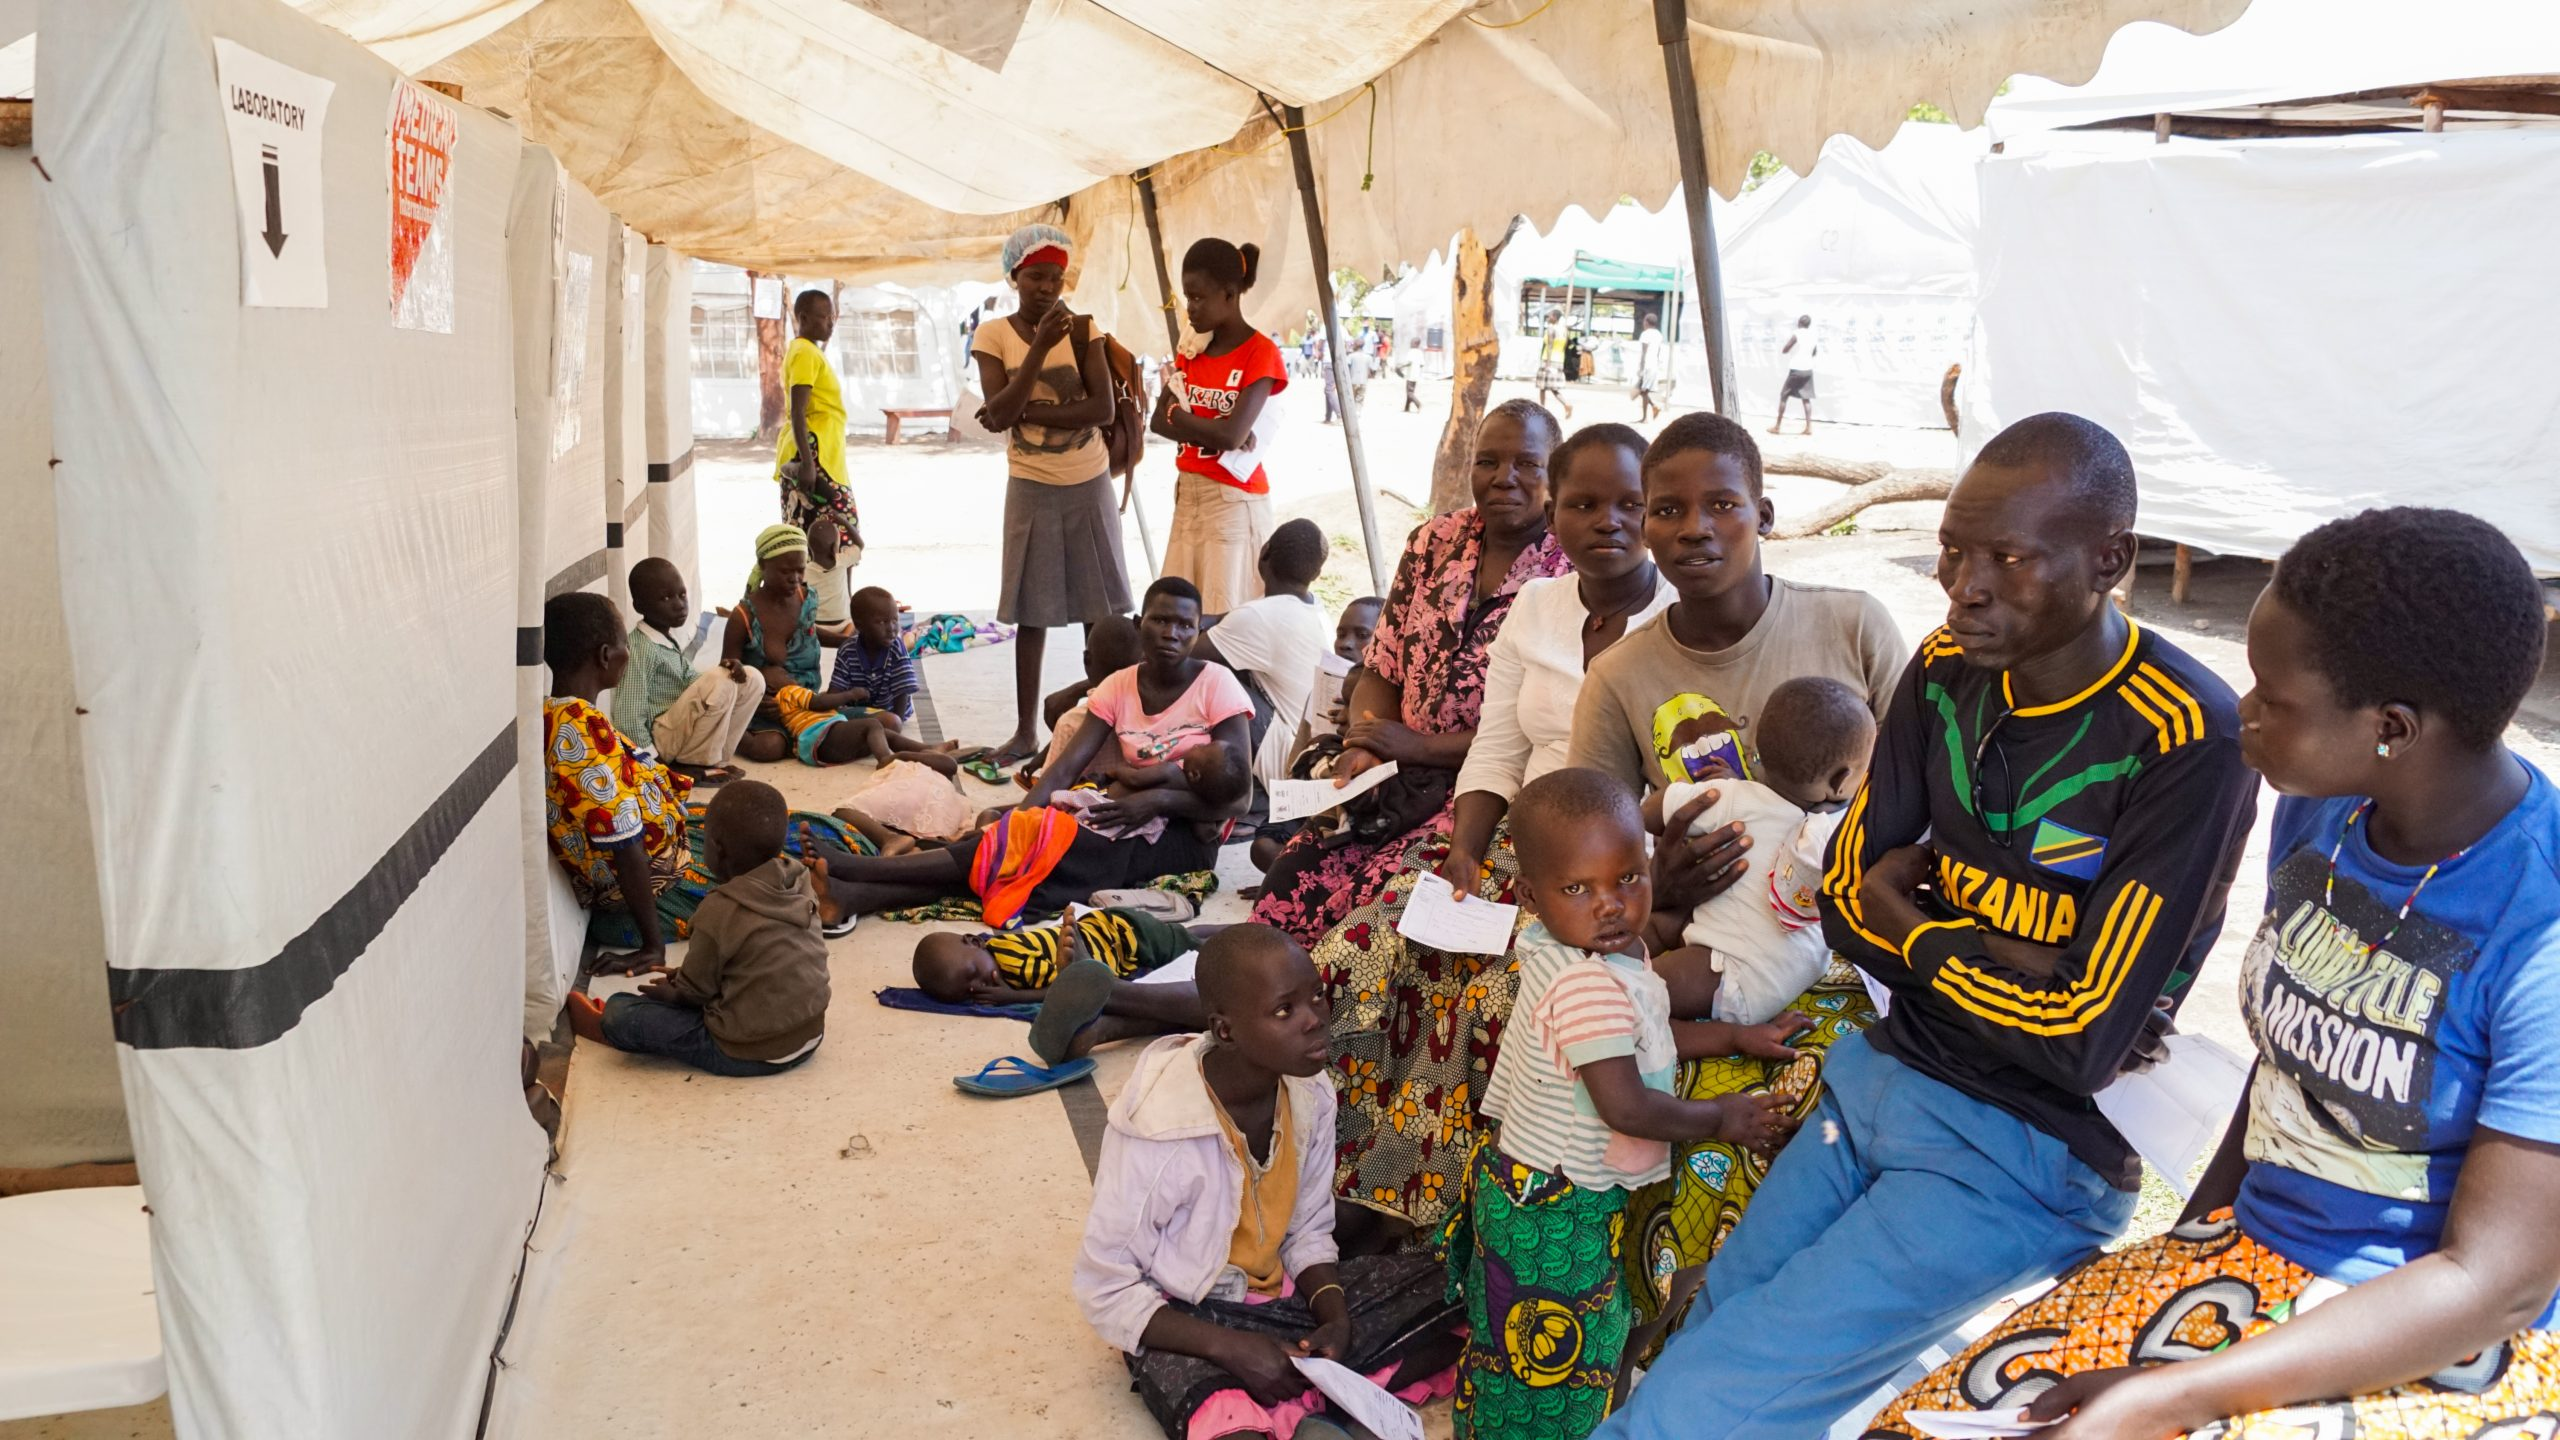 Imvepi Refugee Camp in Uganda. South Sudanese refugees waiting for the medical examination.